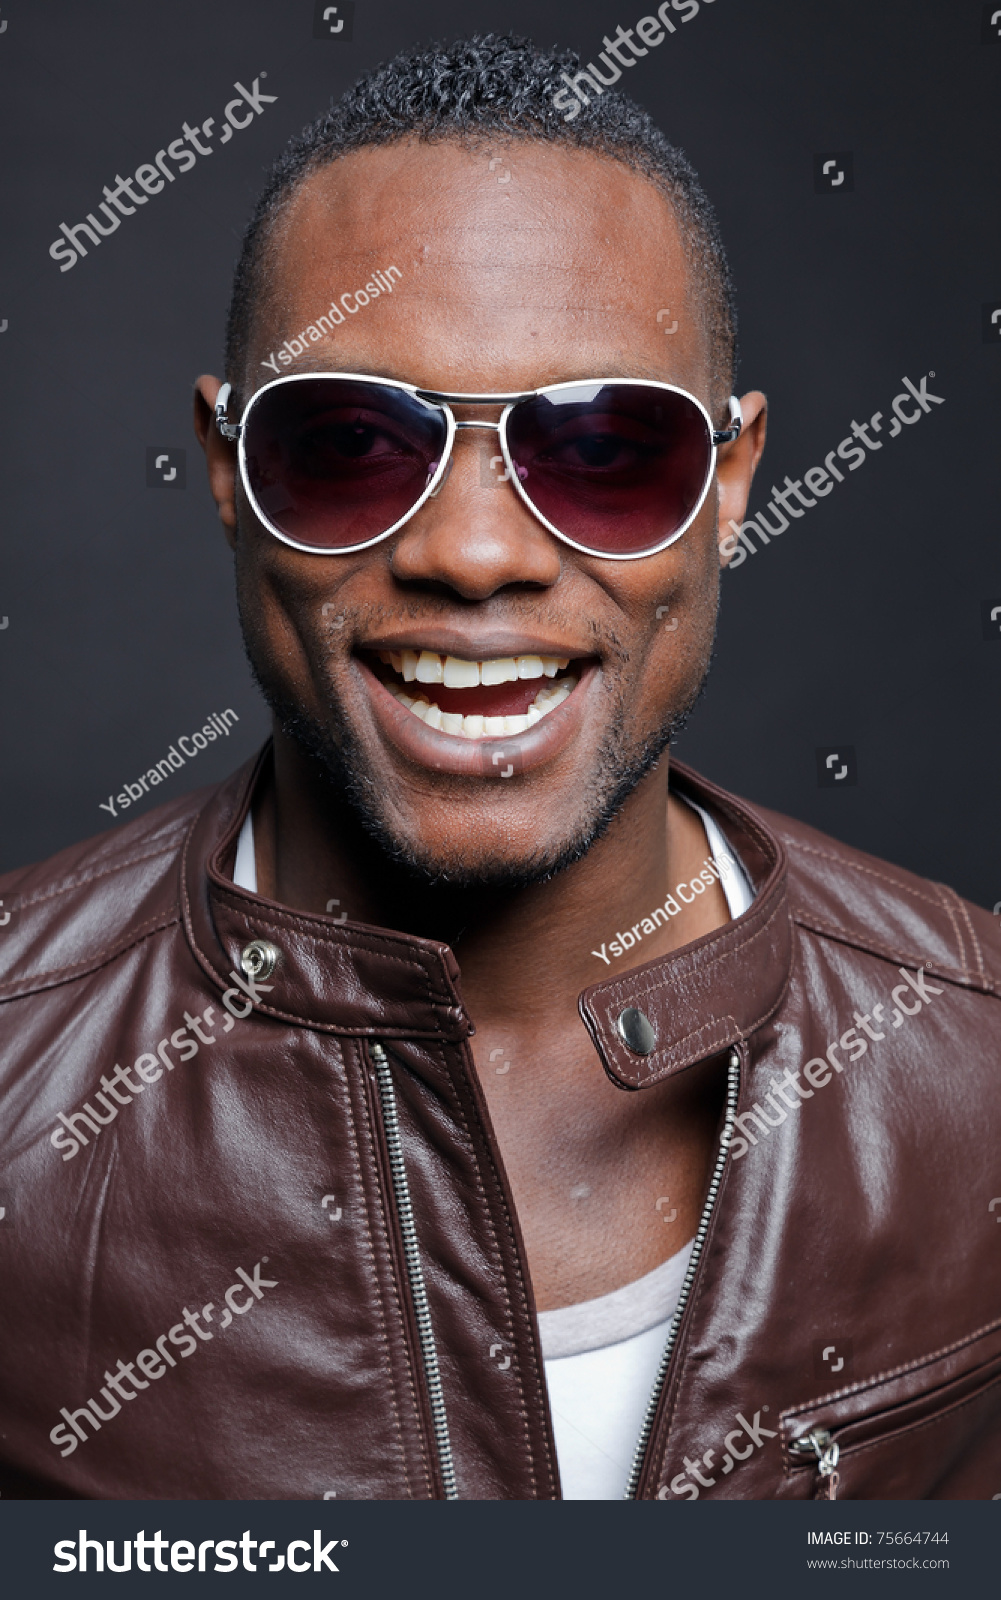 Smiling Casual Young Black Man Wearing Brown Leather ...